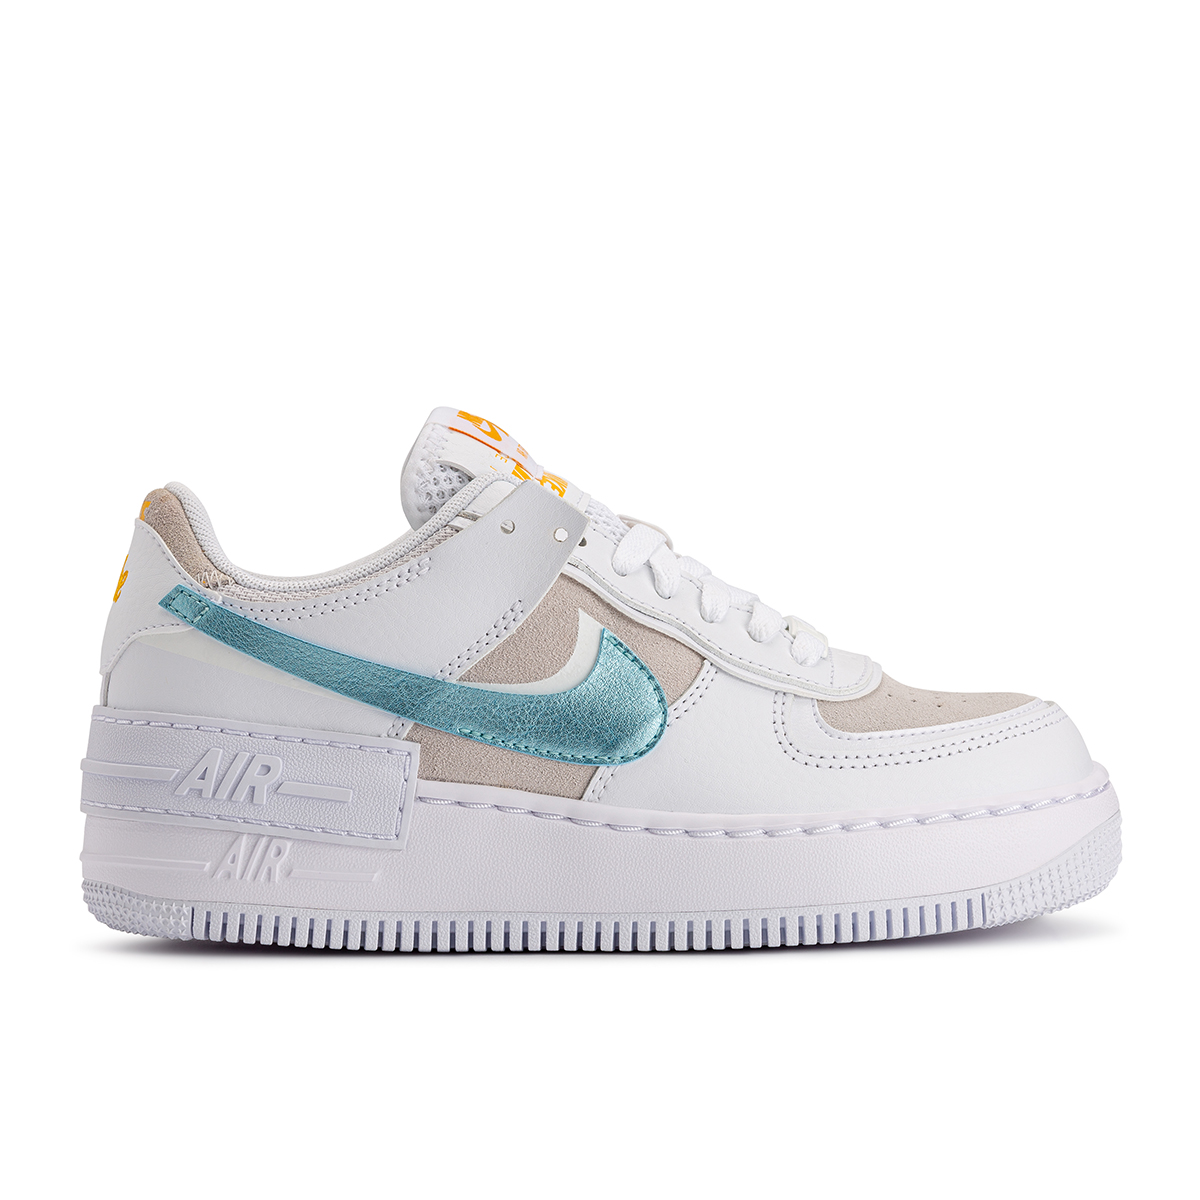 Buy Nike Air Force 1 Shadow Women S Shoes Online Foot Locker Qatar Shadow pieces for a unique play on a classic. nike air force 1 shadow women s shoes